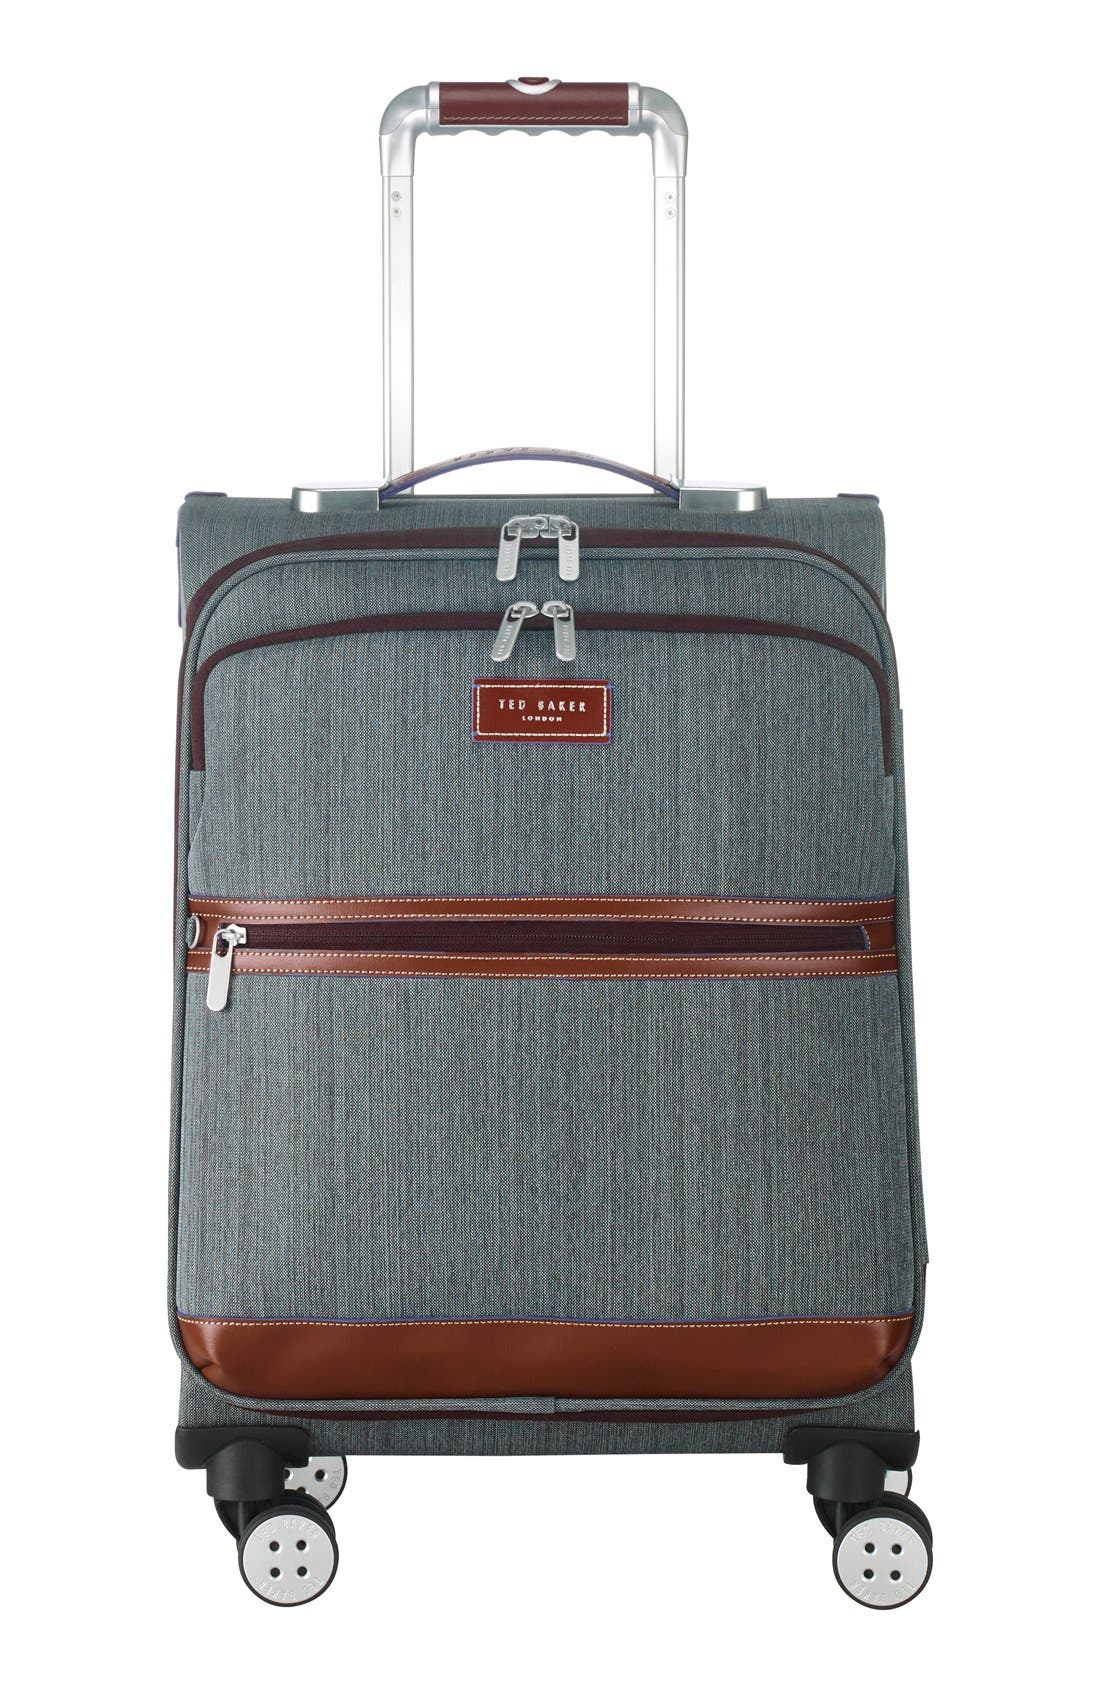 Ted Baker London 'Small Falconwood Grey' Four Wheel Suitcase (22 Inch)